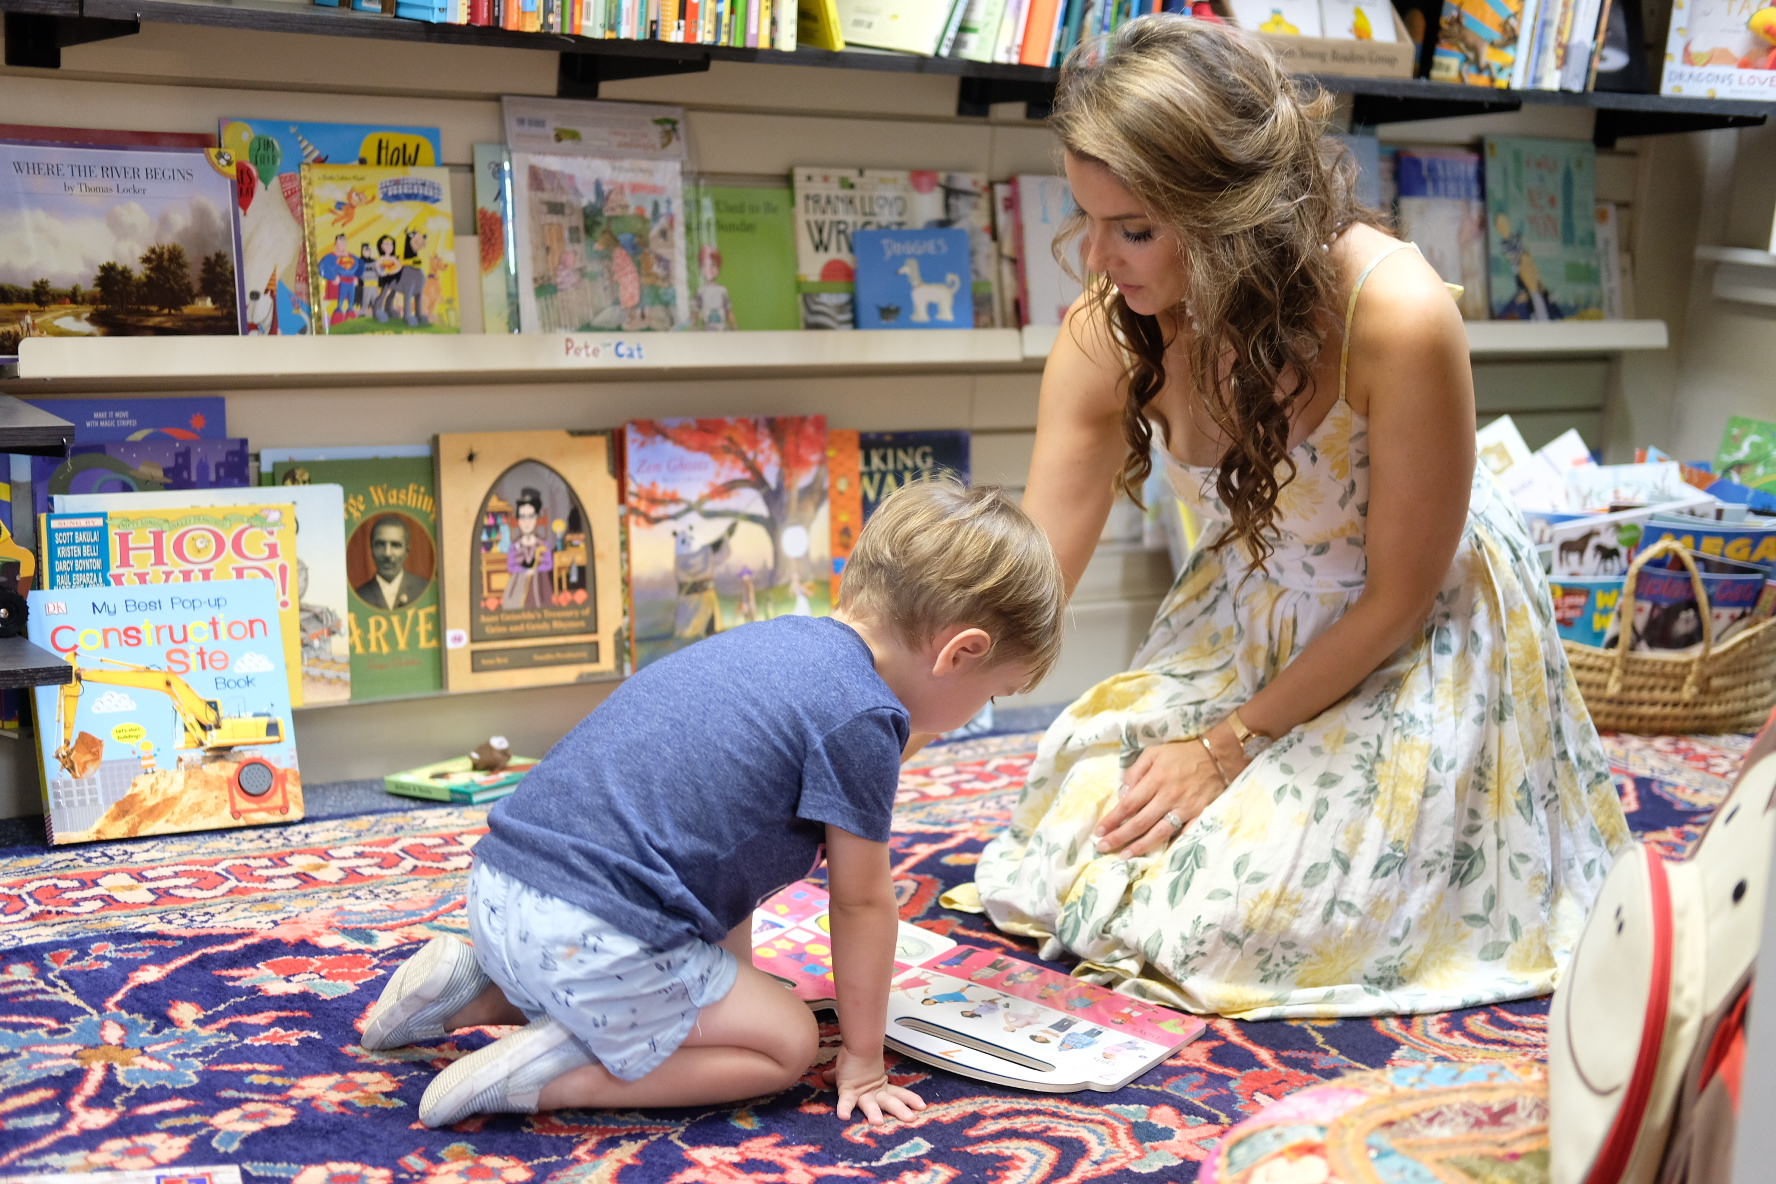 The Children's Book Room at E. Shaver Booksellers in Savannah GA